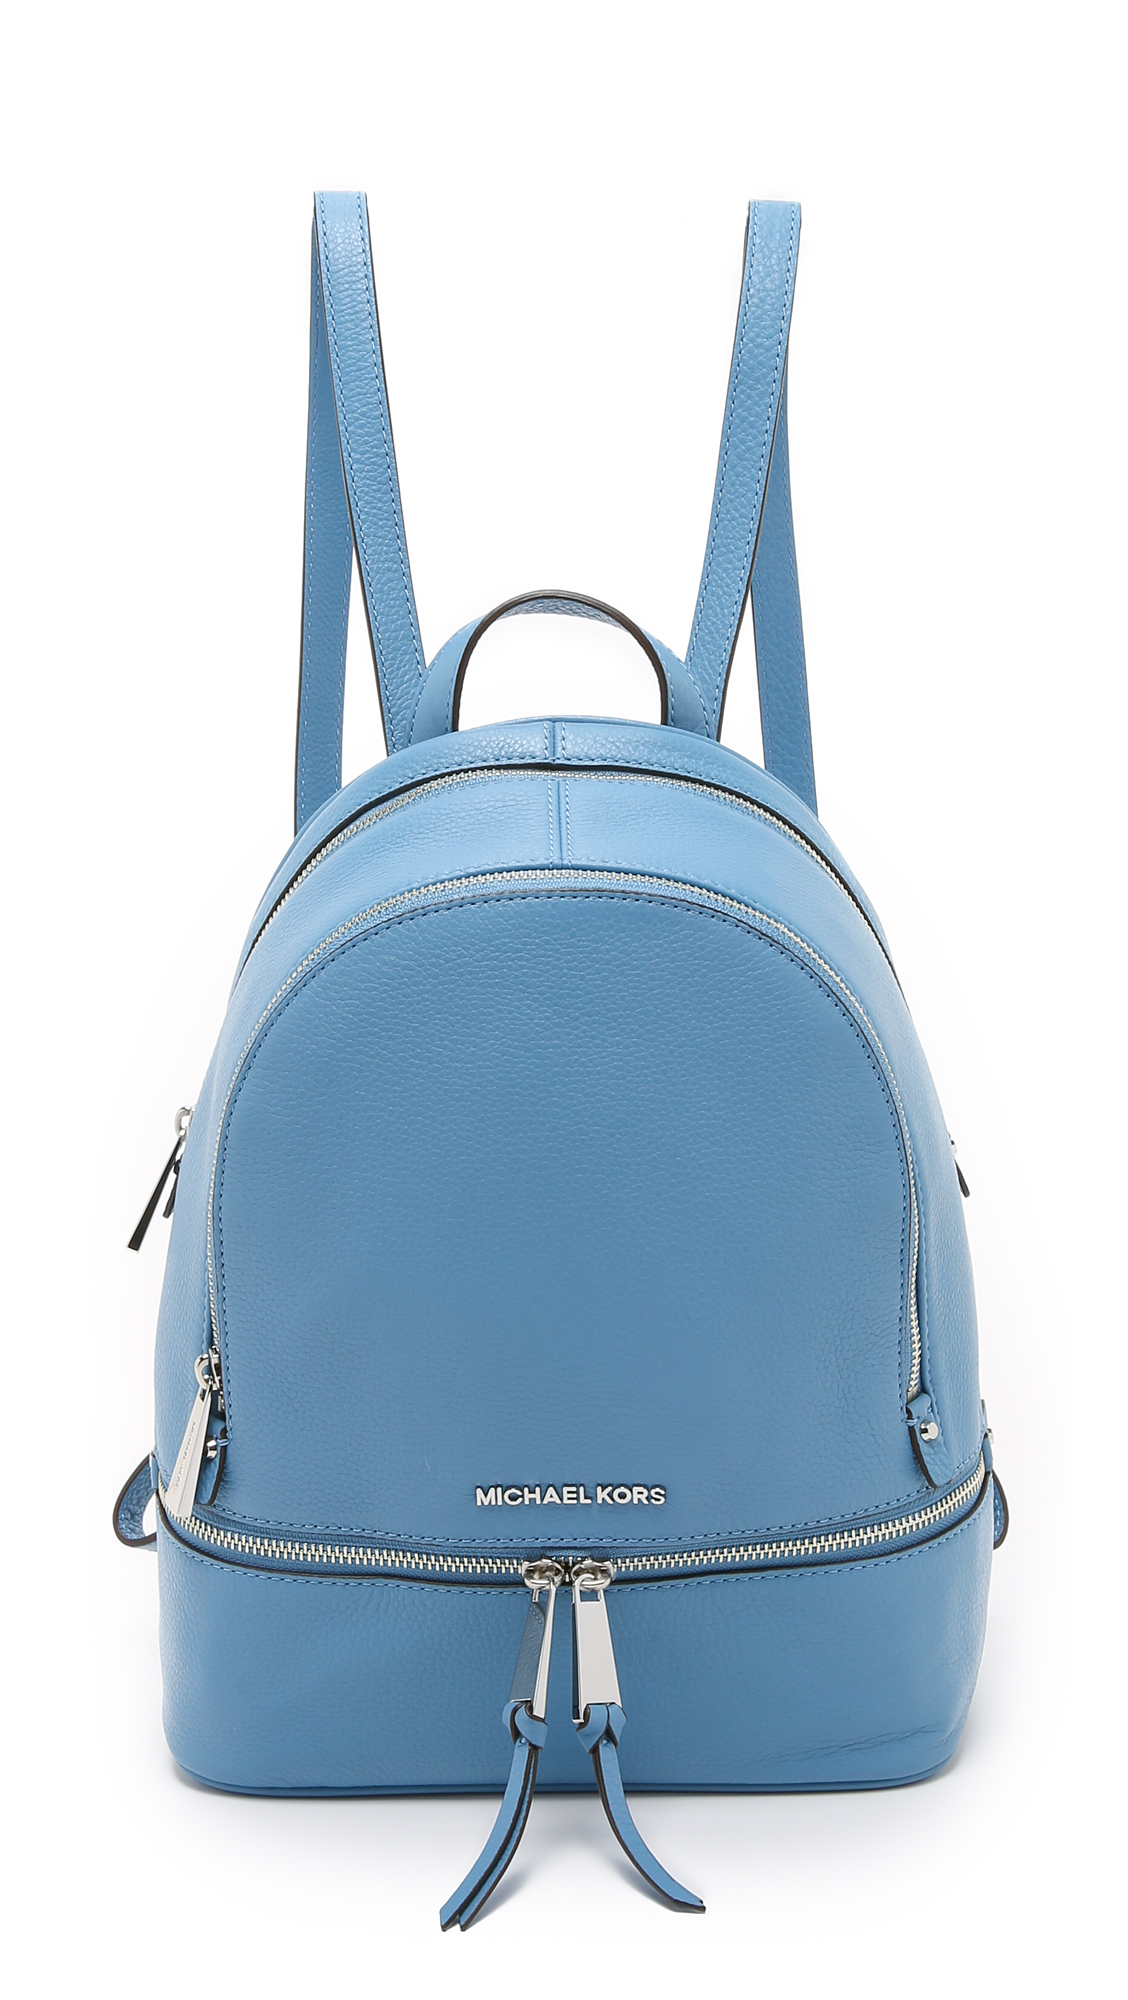 35898a1f0171 ... promo code for michael michael kors rhea small backpack ballet in blue  lyst 928b5 348c8